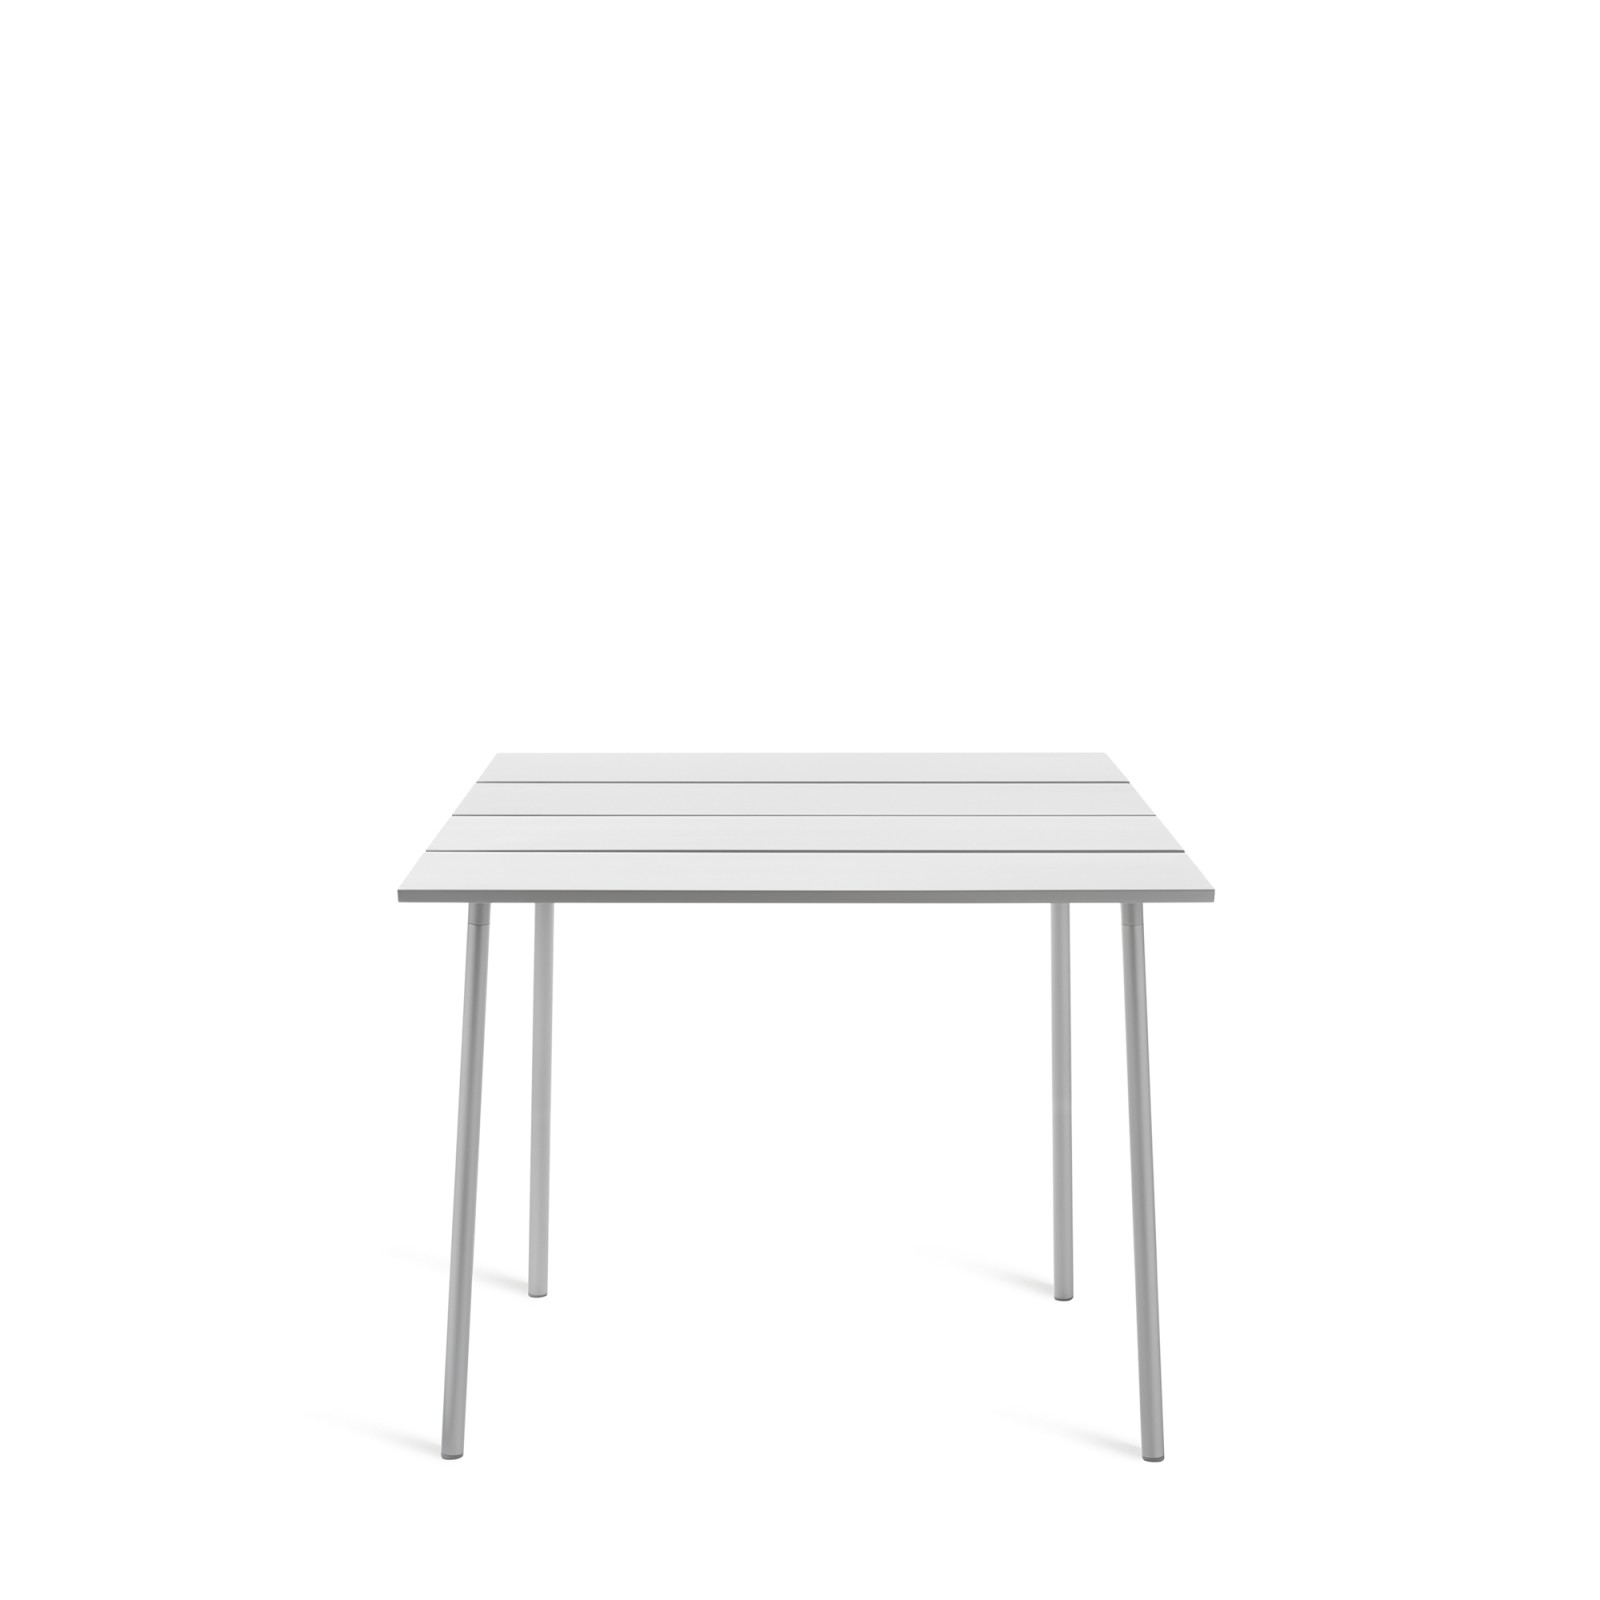 Run High Table Aluminium, Aluminium, 183cm